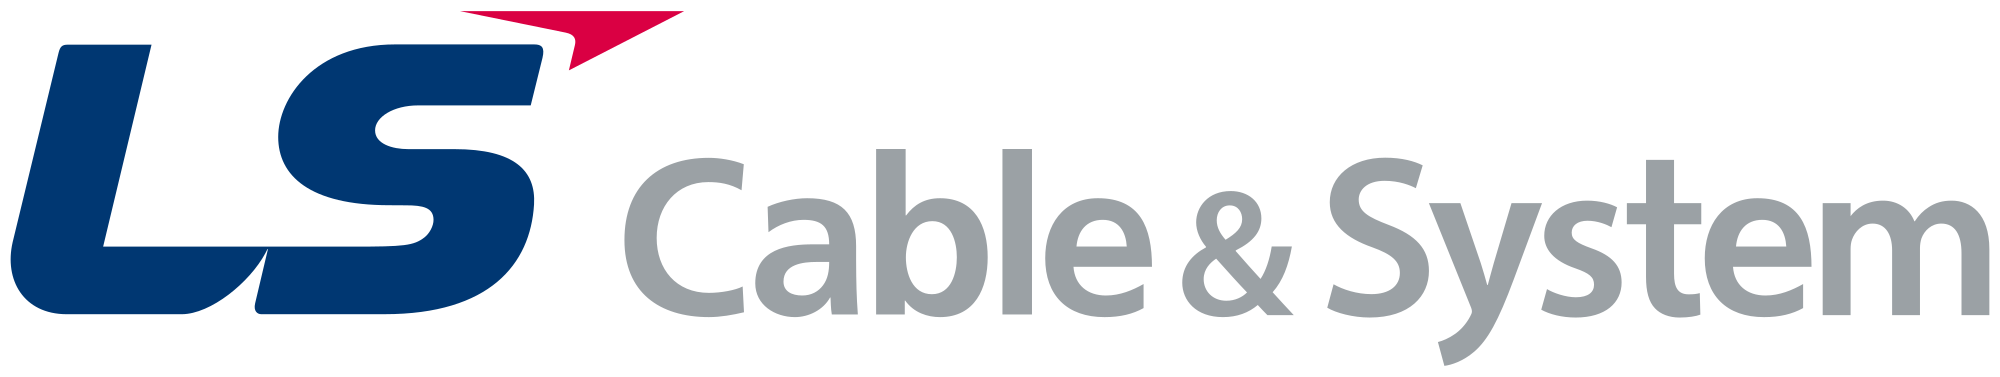 LS_Cable__System_logo.png